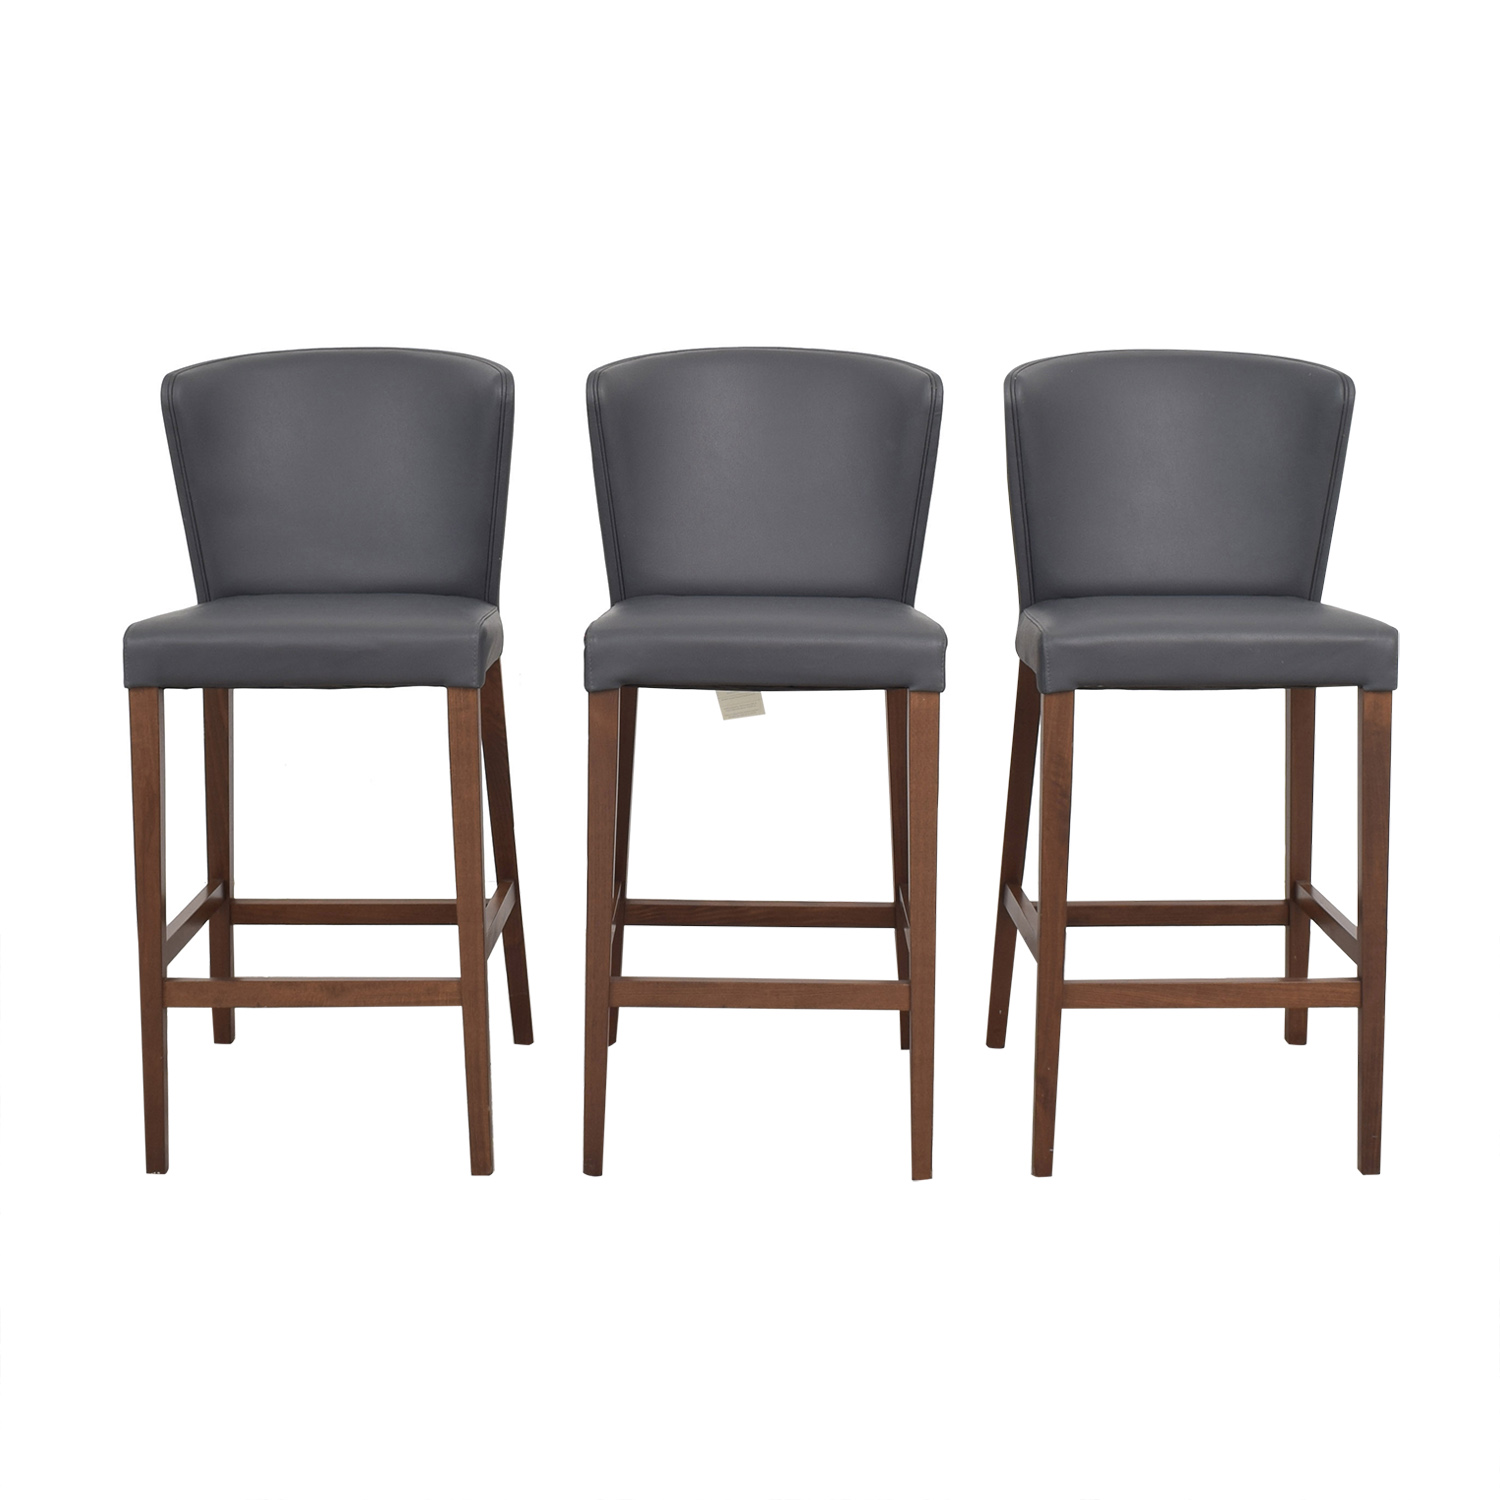 Crate & Barrel Crate & Barrel Curran Stools Stools